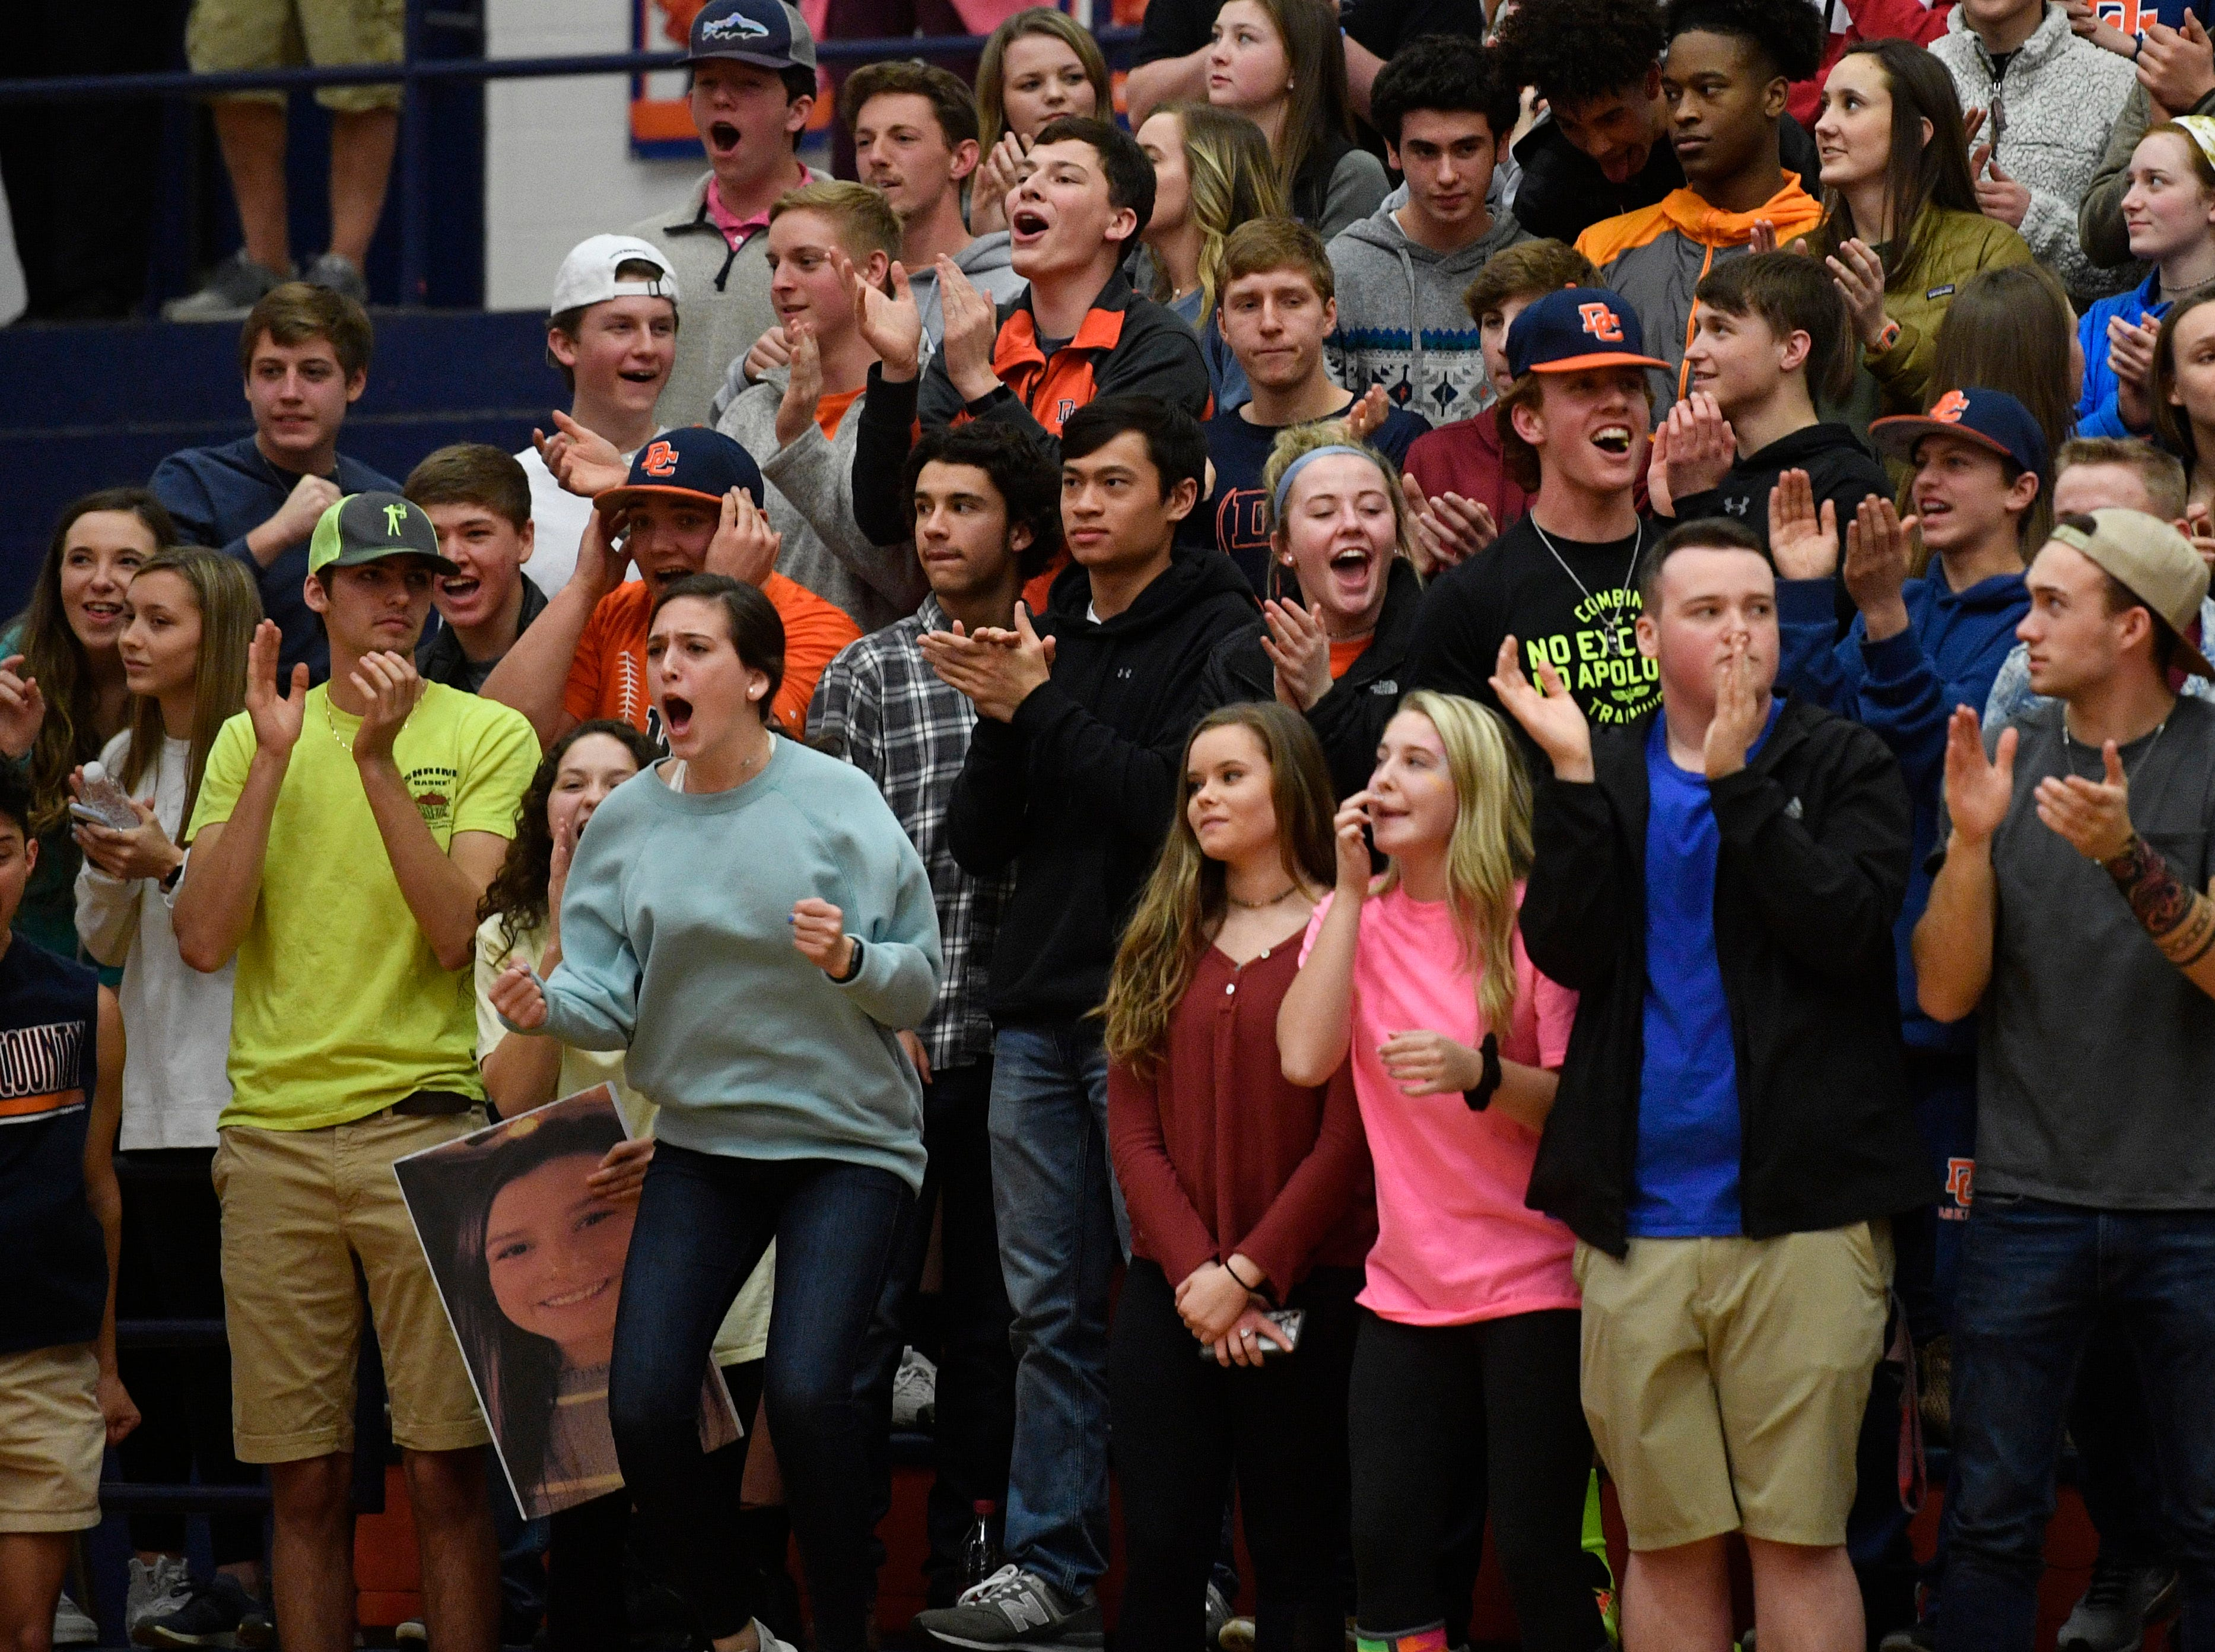 Dickson fans go wild as their teams comes from behind as Dickson plays Brentwood in the District 11-AAA girls basketball championship Monday, Feb. 18, 2019, in Dickson, Tenn.